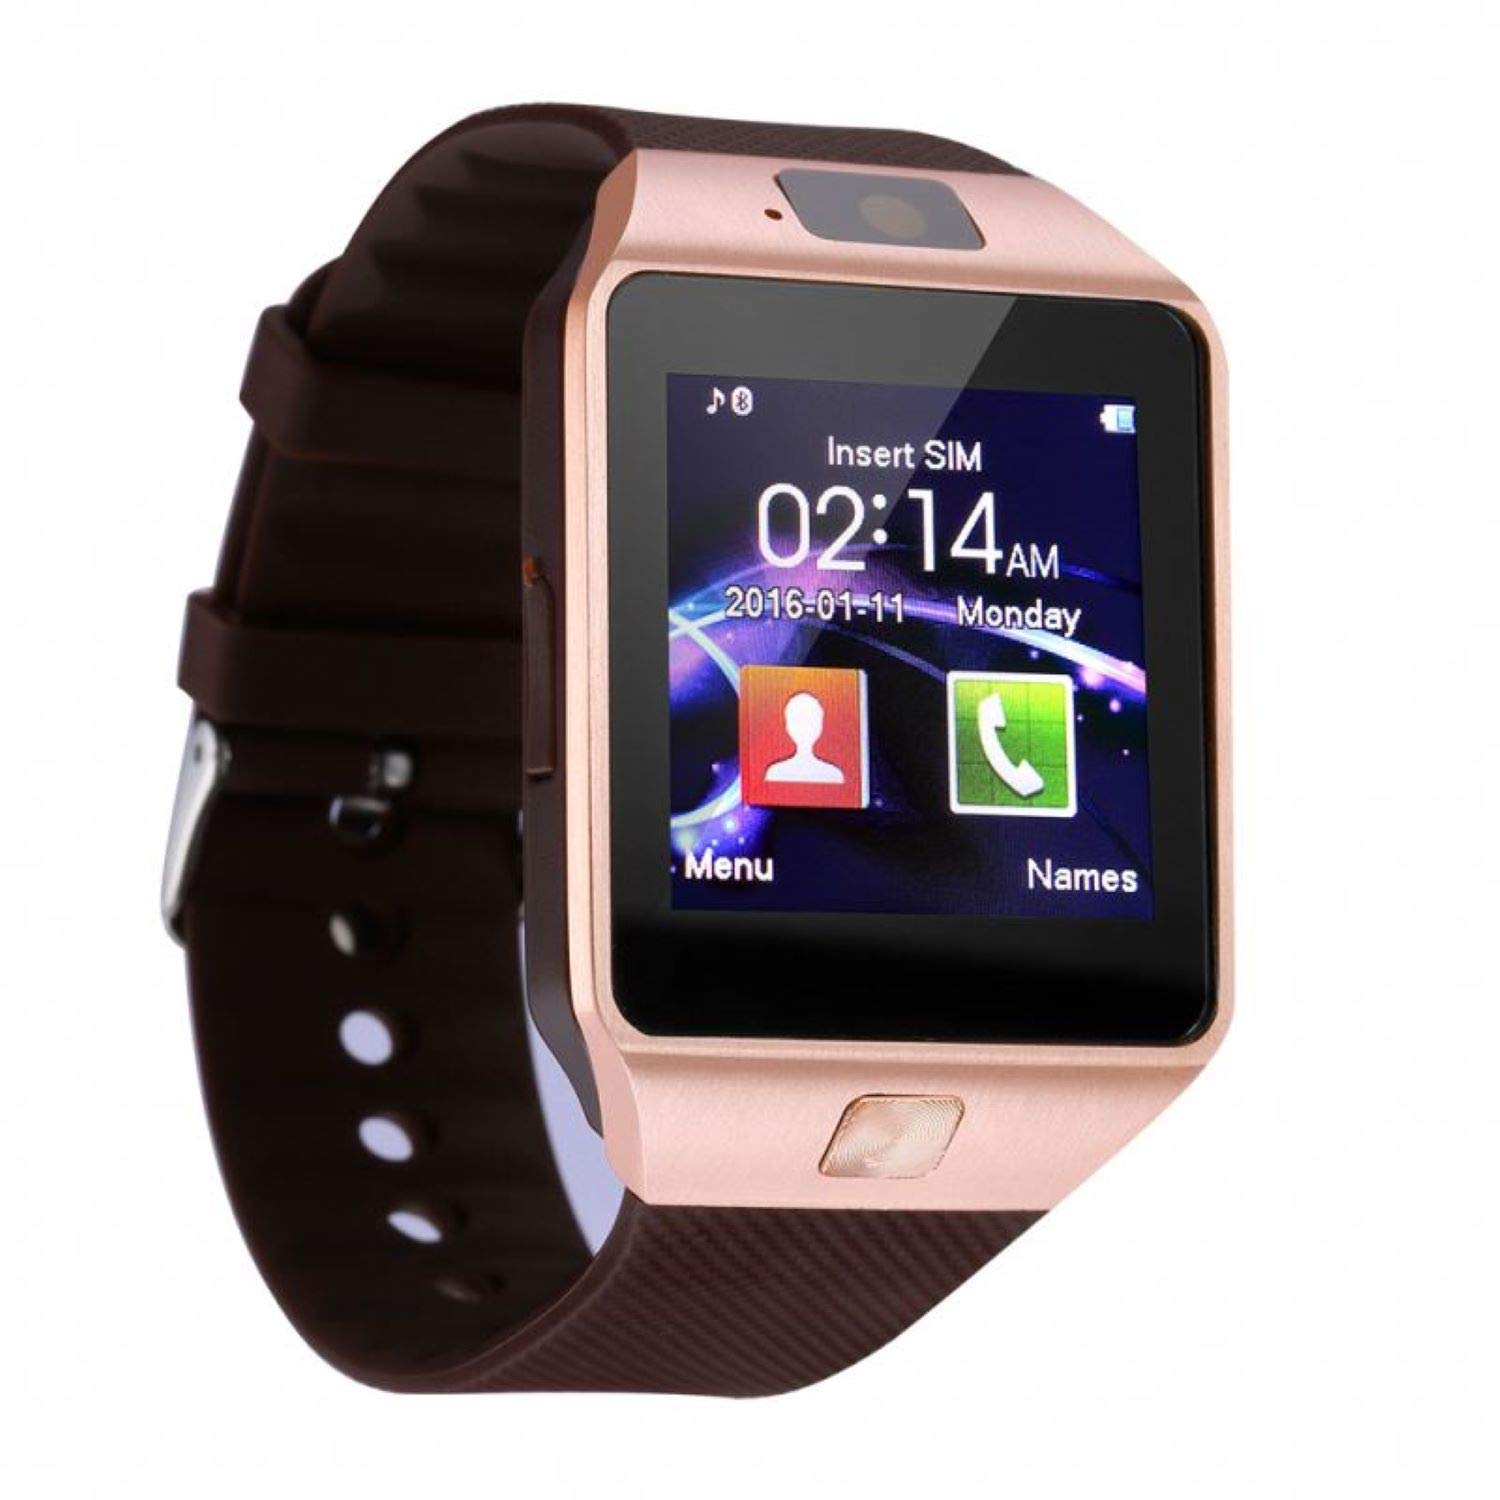 The Smart Watch Sweatproof with HD LCD Touchscreen, GV18 A+ Smart Watch for Mobile Phones (Silver)